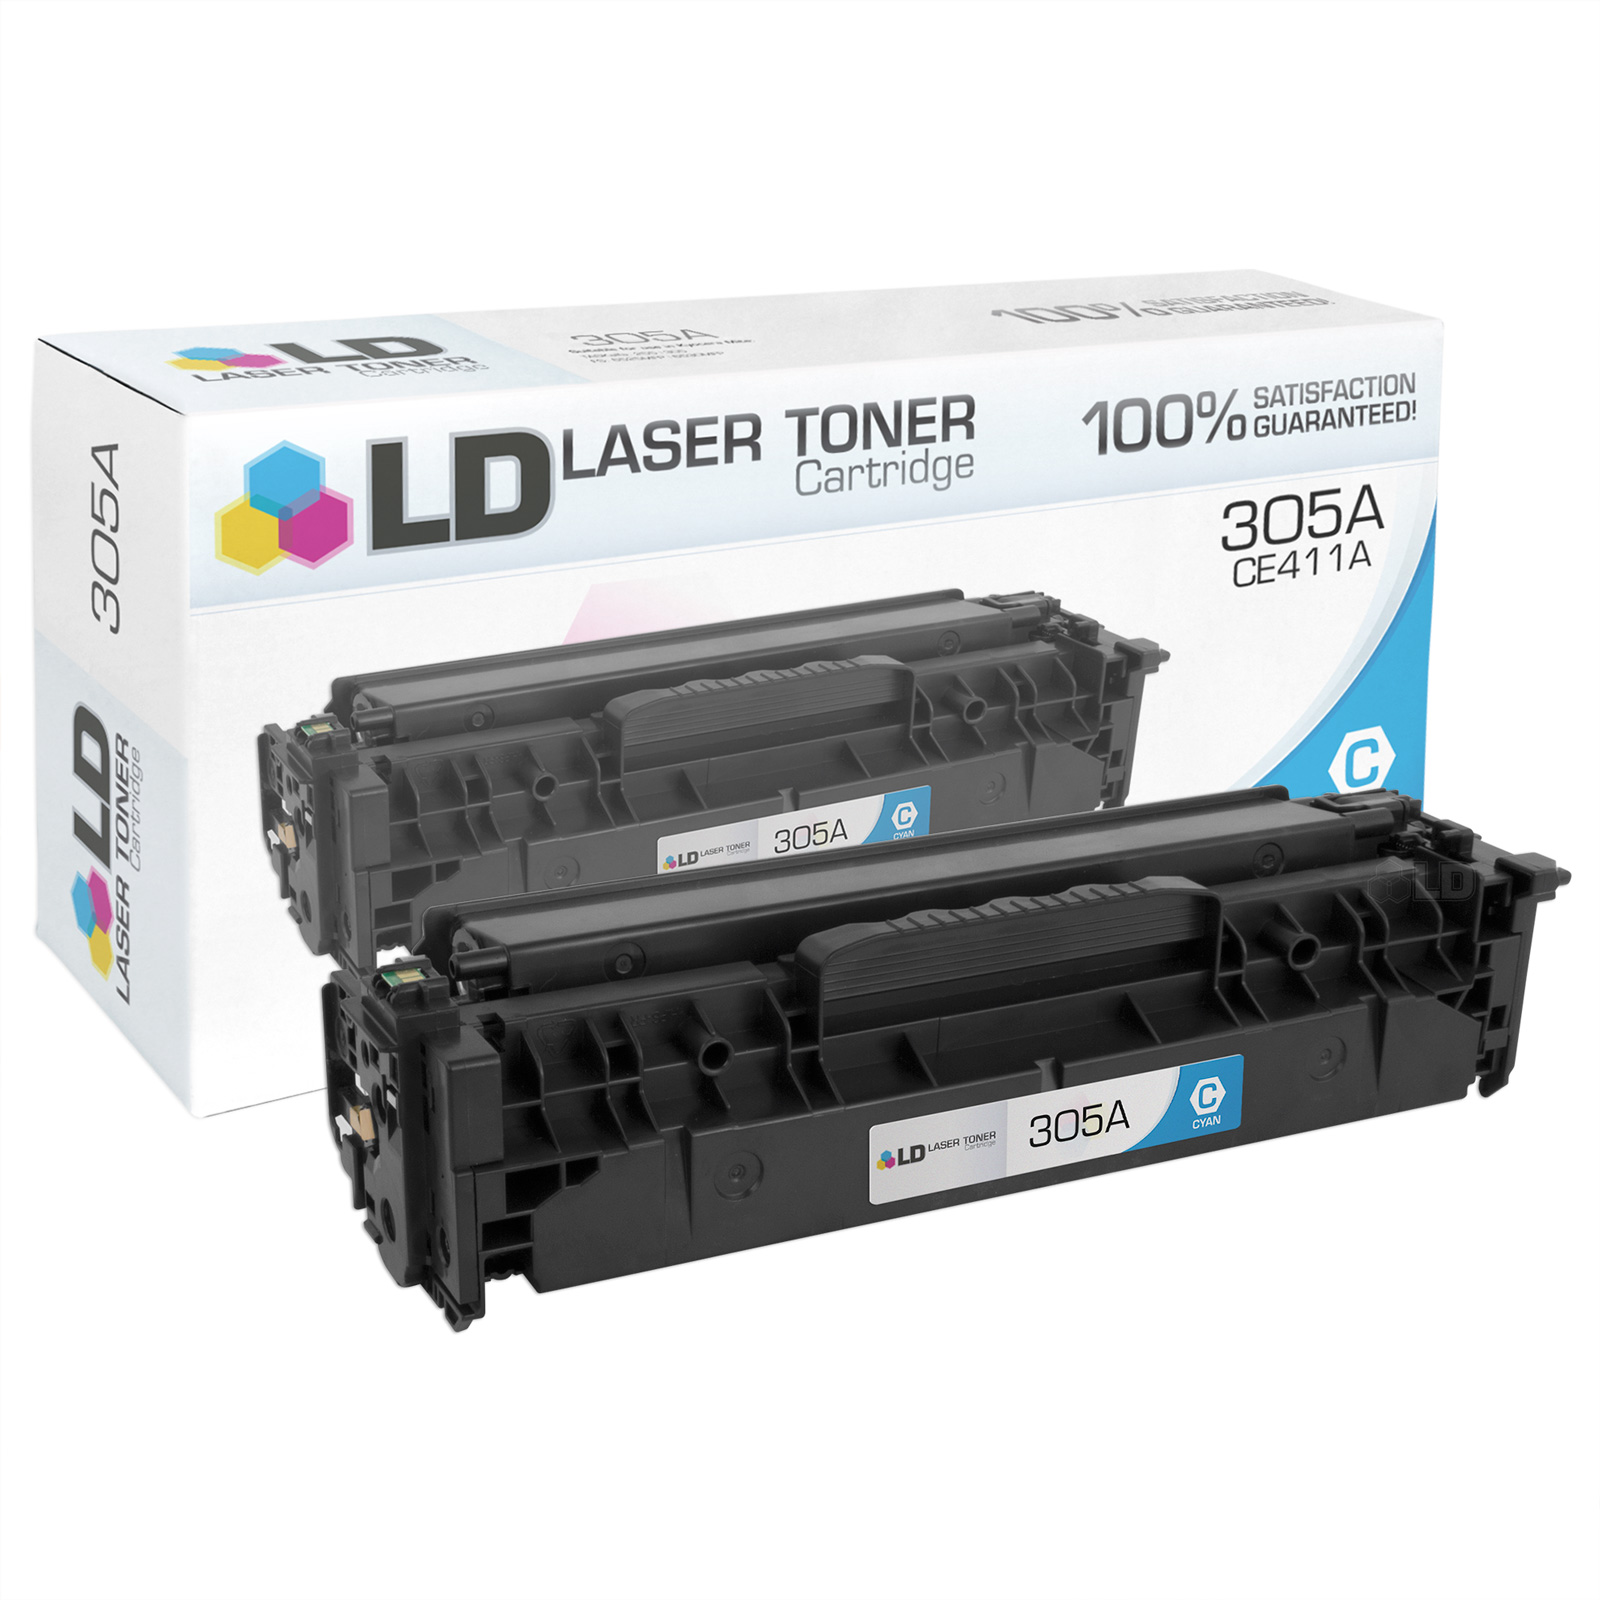 LD Compatible Replacement for HP 305A / CE411A Cyan Toner Cartridge for HP LaserJet Pro 300 Color MFP M375nw, 400 Color M451dn, M451dw, M451nw, M475dn, & M475dw